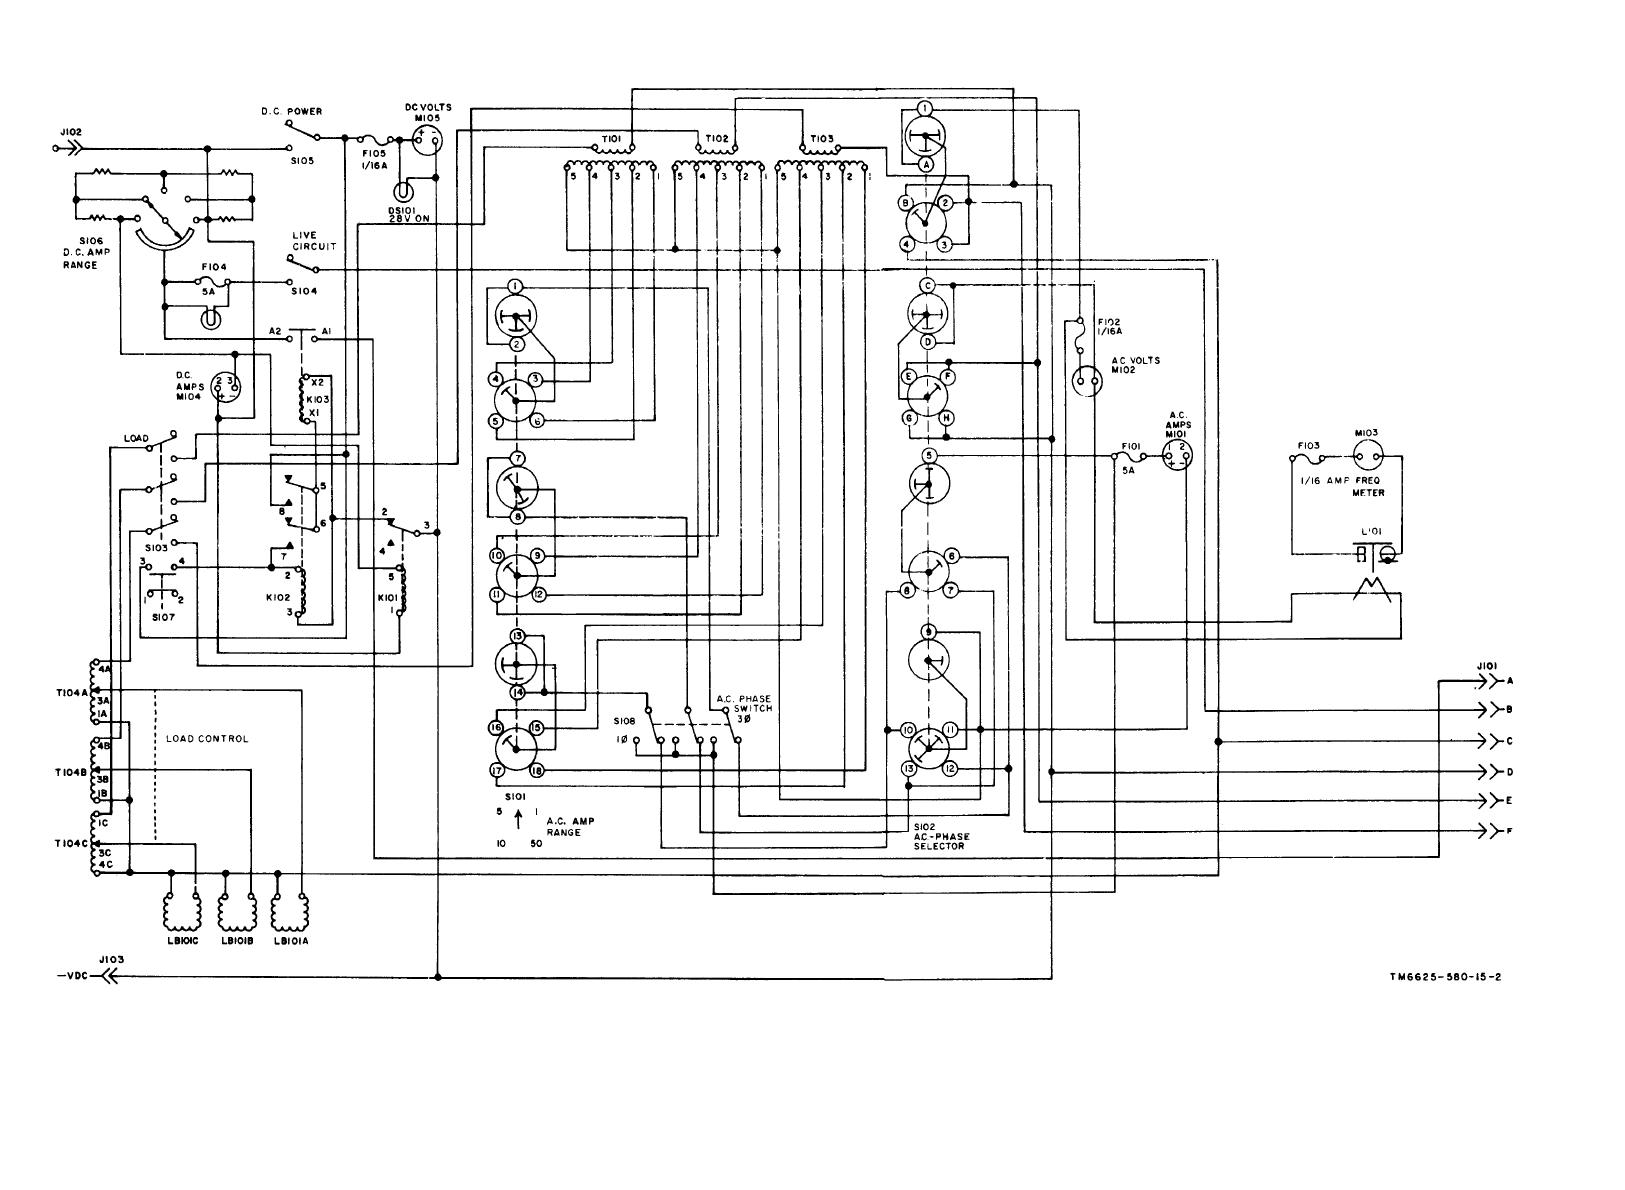 Figure 1-4. Aircraft motor-generator tester schematic diagram